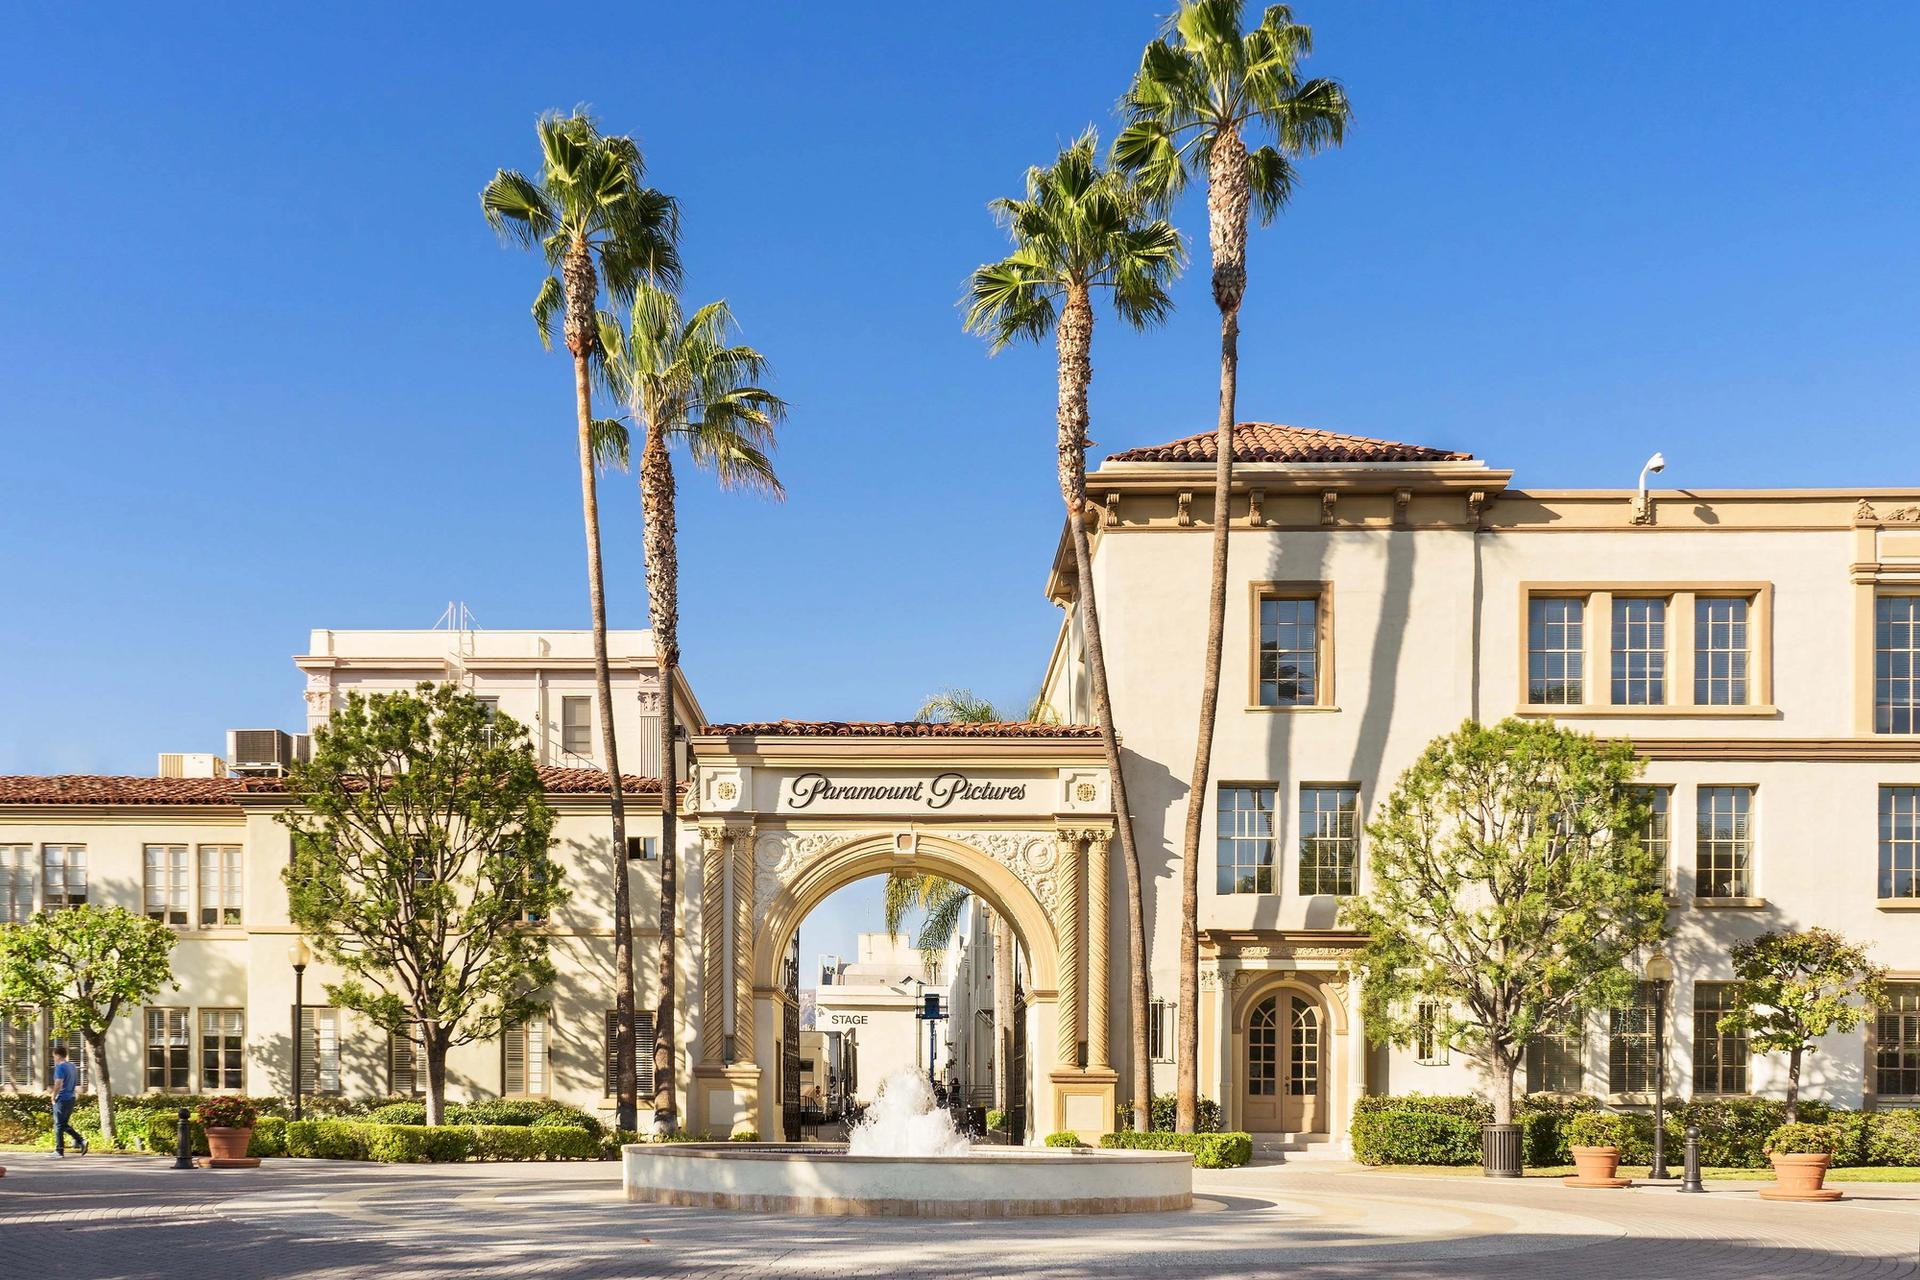 The first Frieze Los Angeles opens on Valentine's Day 2019 at Paramount Studios Courtesy of Paramount